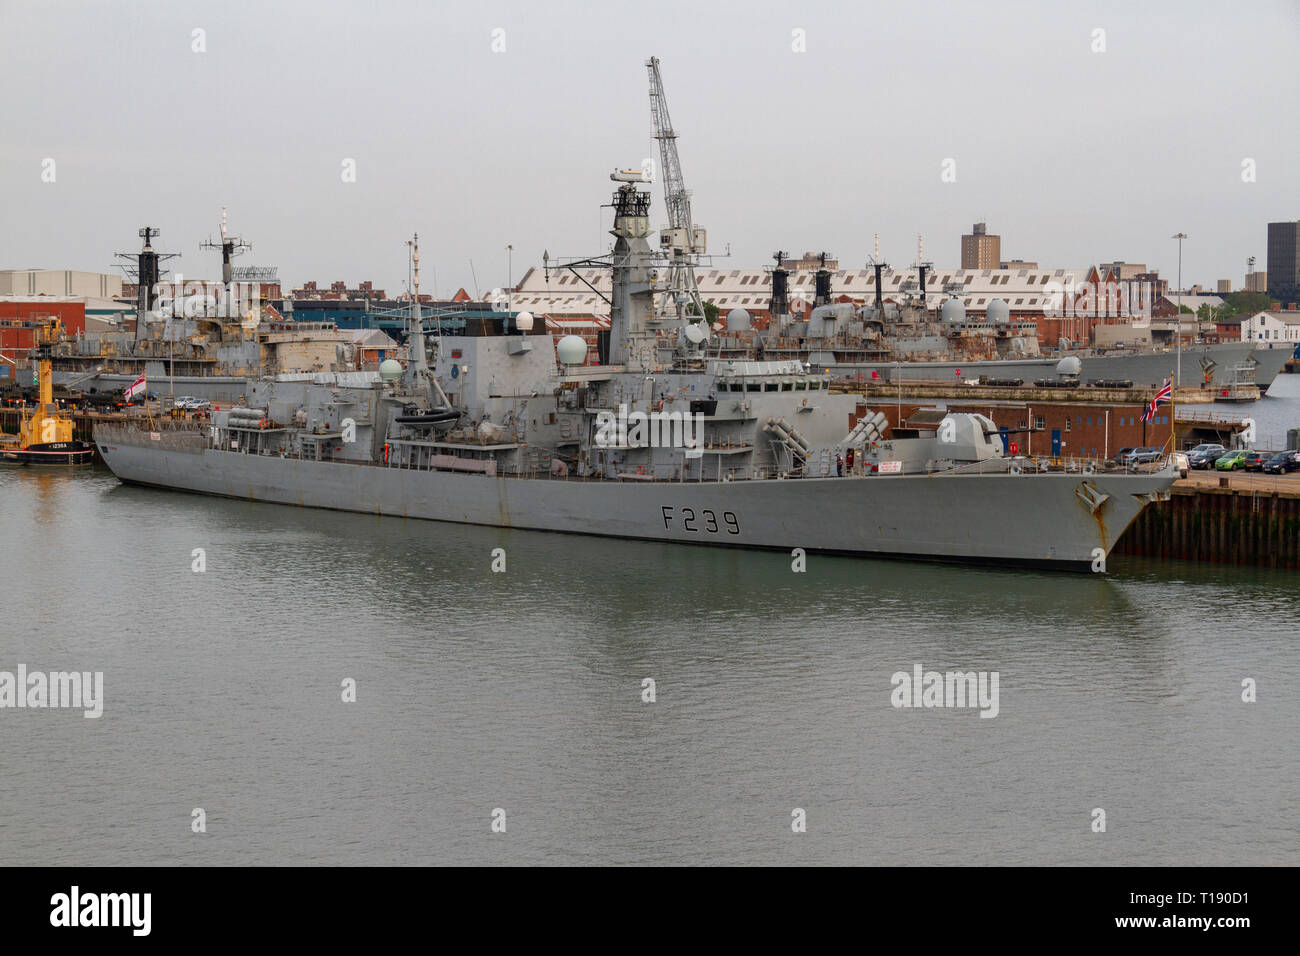 The HMS Richmond is a Type 23 frigate of the Royal Navy moored in the Royal Navy Dockyard, Portsmouth, UK. - Stock Image